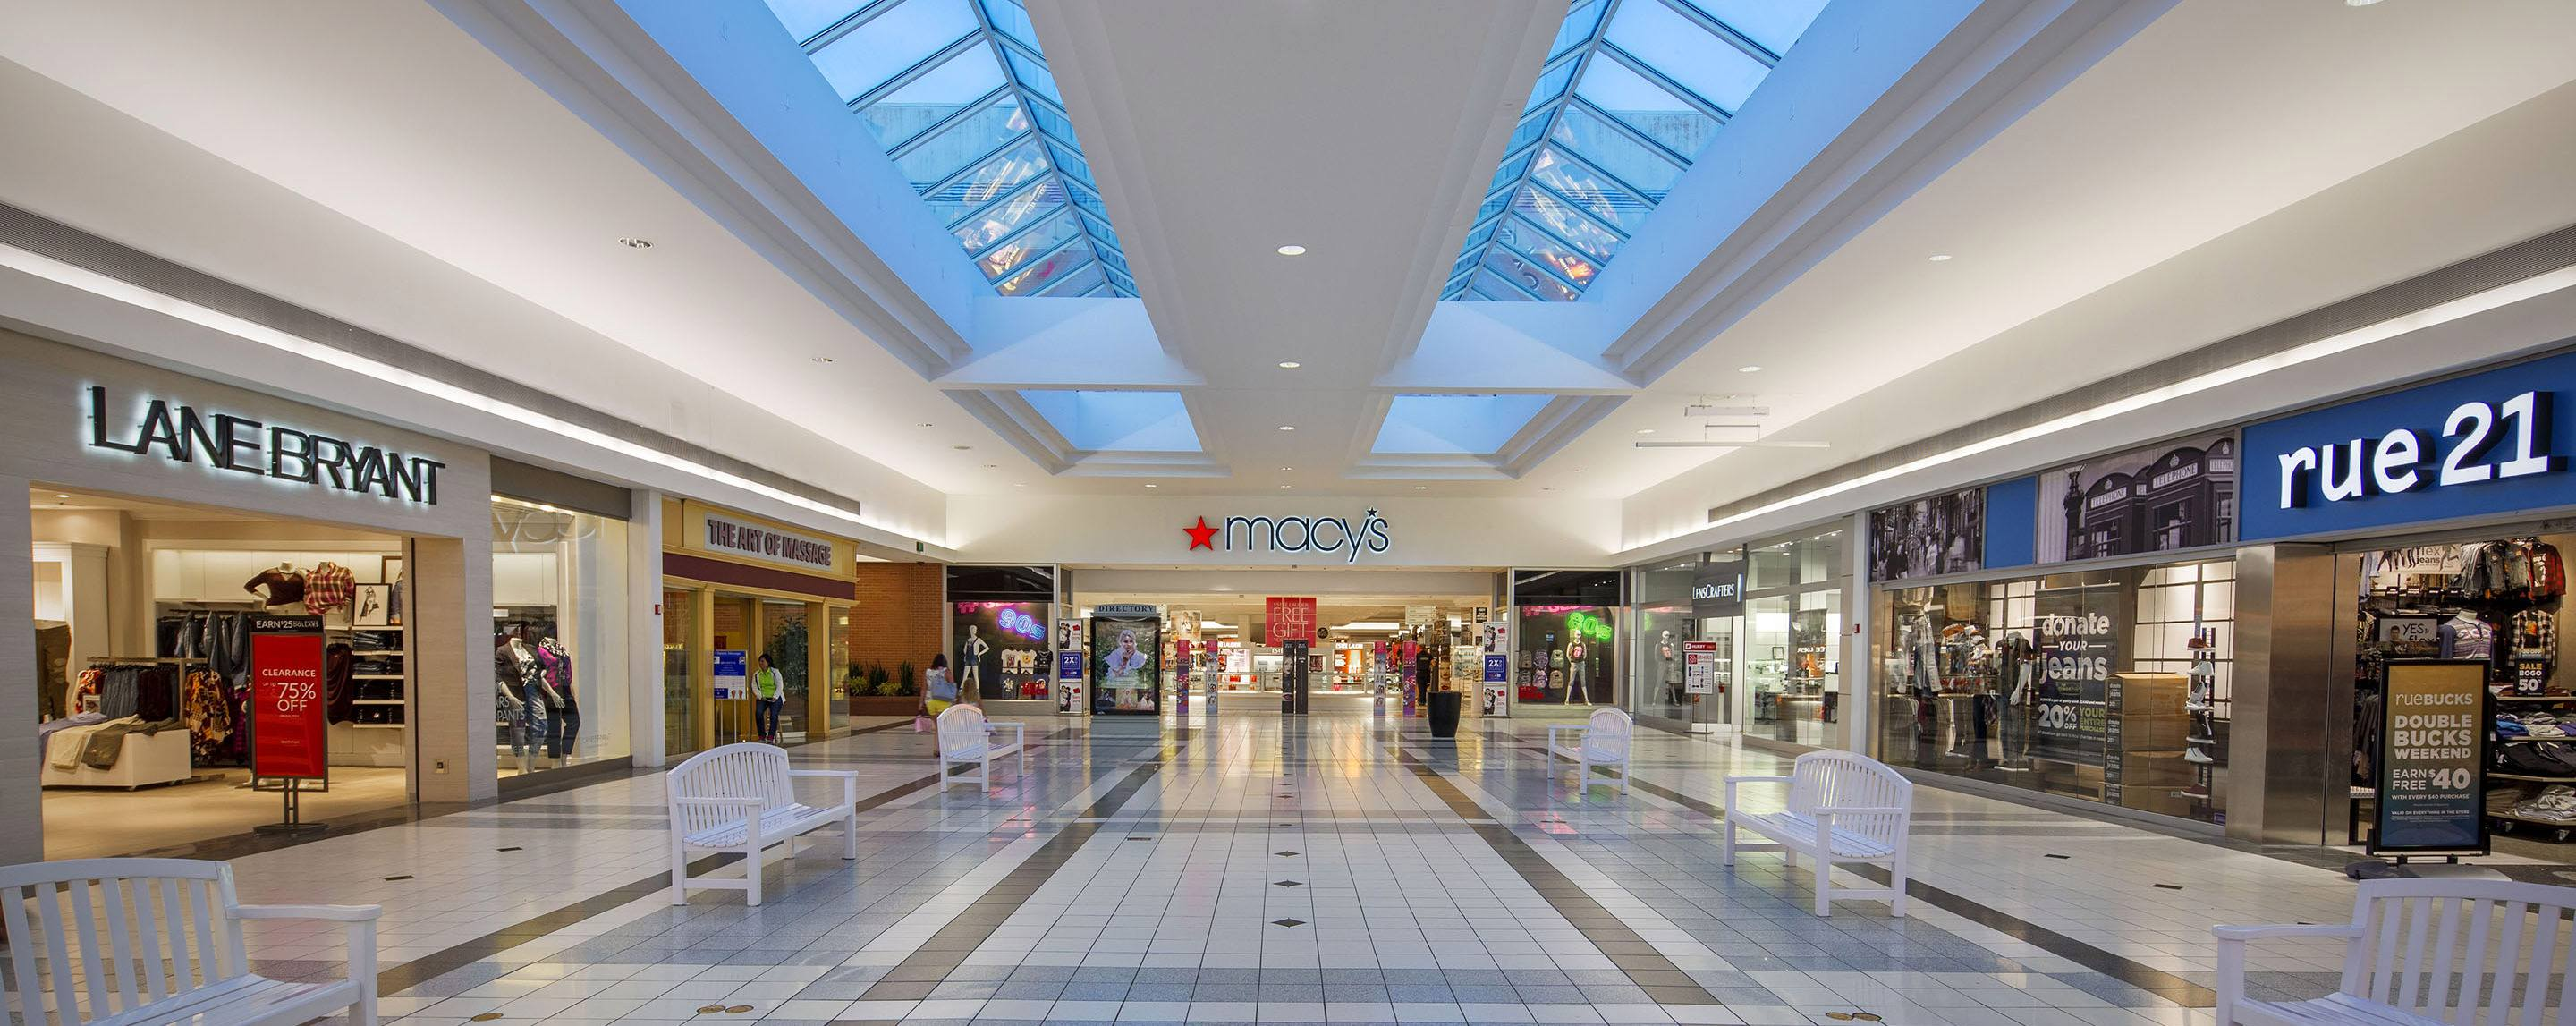 A shot down a mall hallway, with views of Macy's Lane Bryant, Gift, and Lenscrafters.